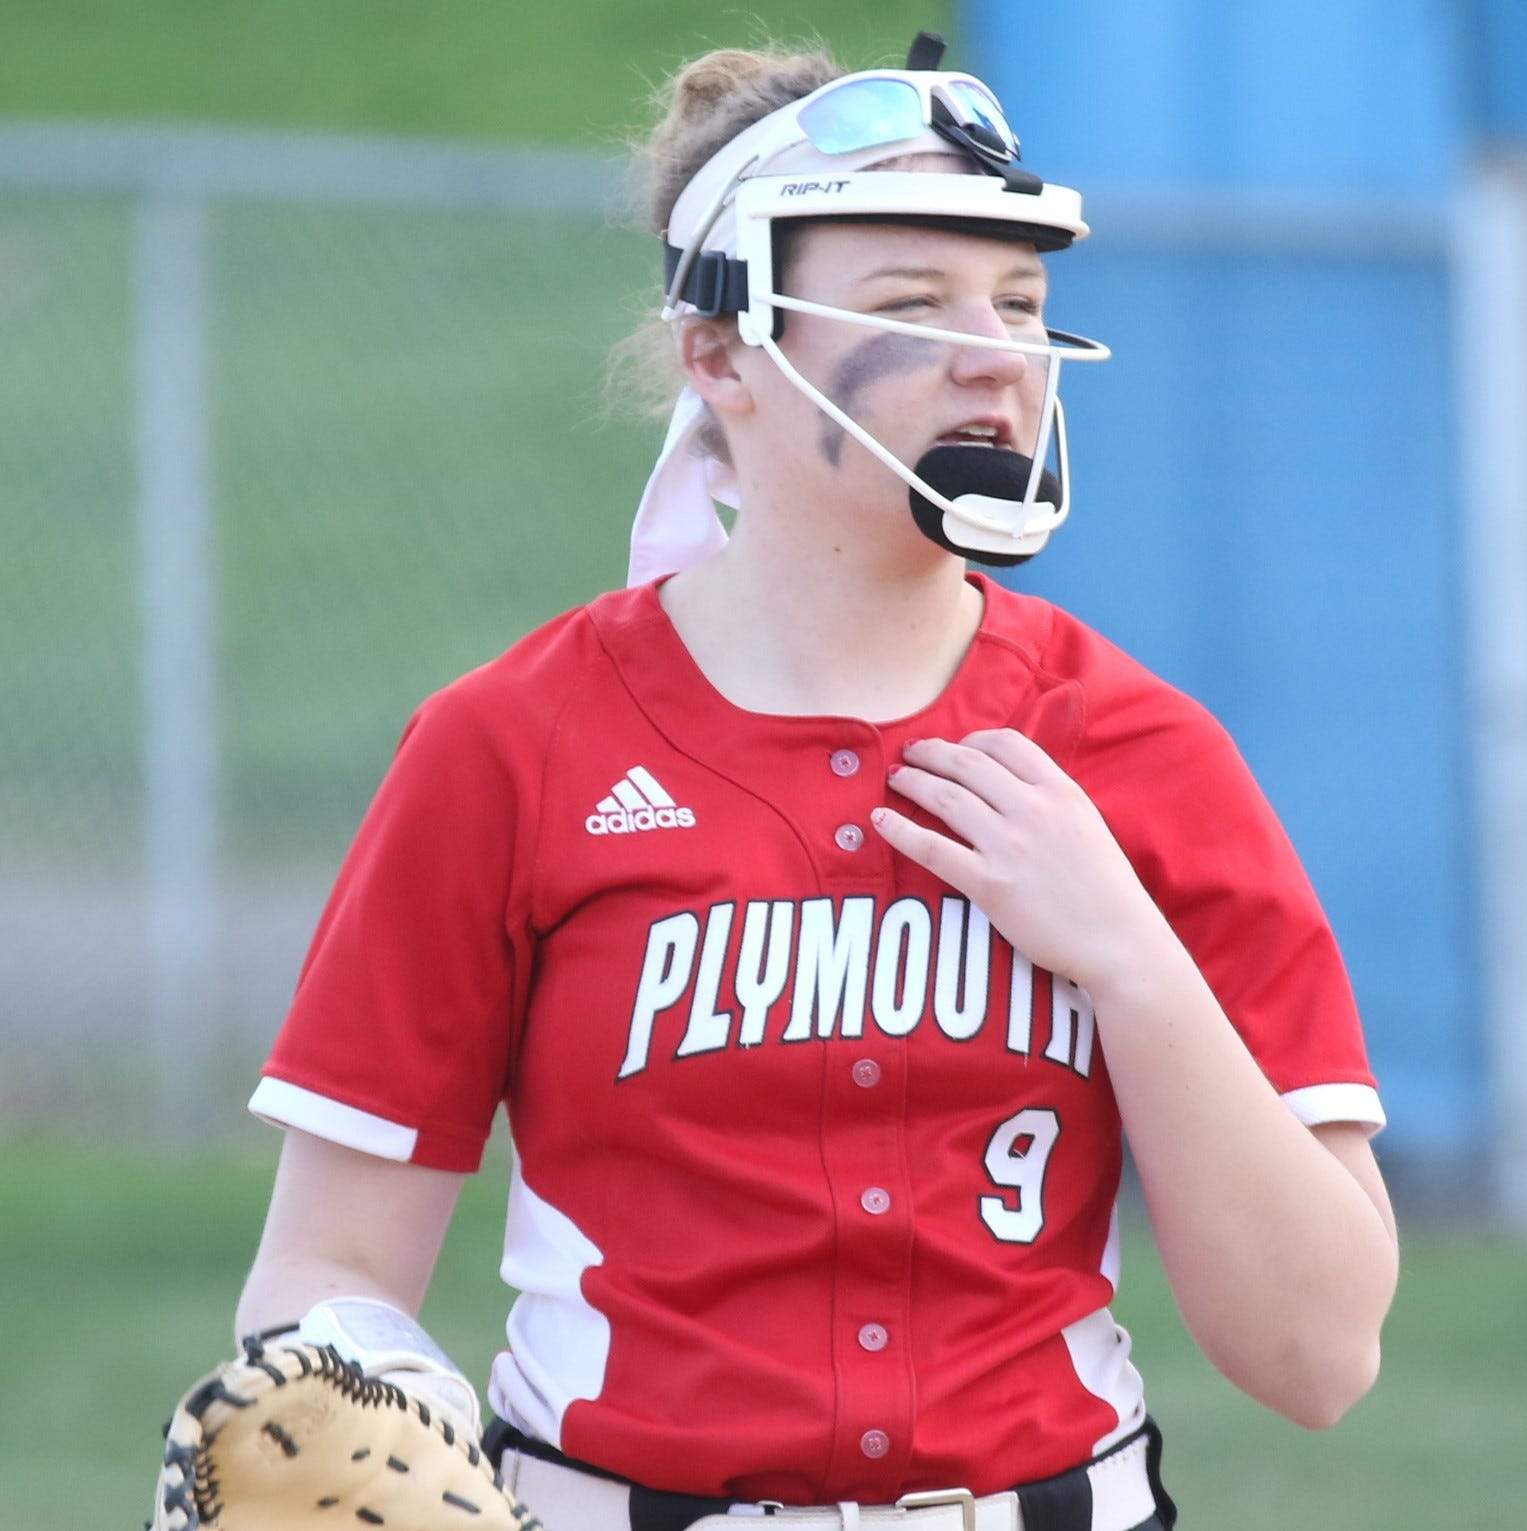 Scoreboard: Plymouth's Chaffins hits walk-off homer to beat Monroeville